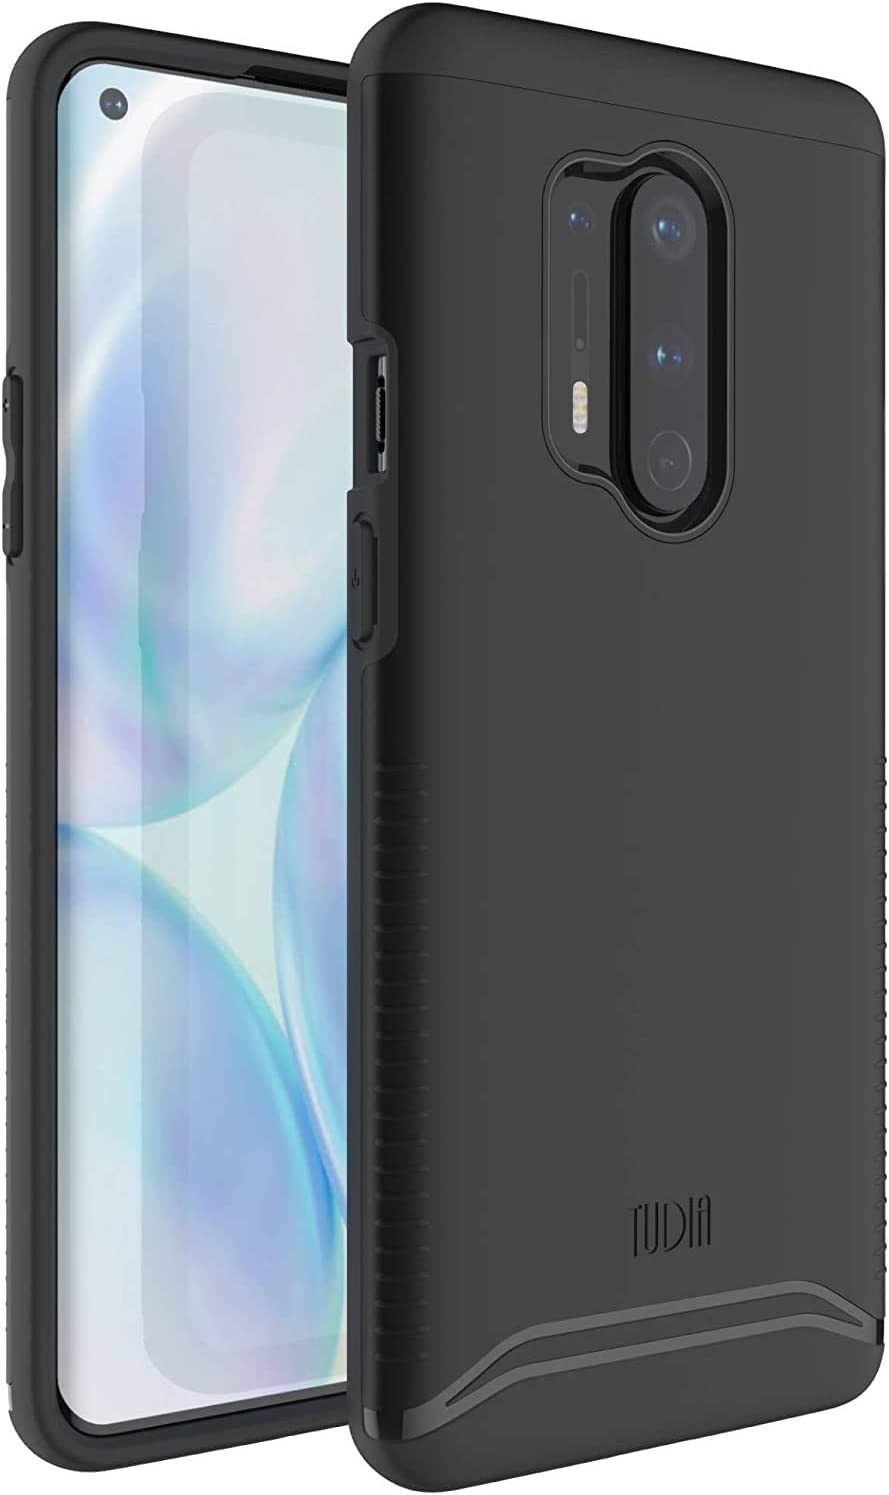 TUDIA Merge Designed for OnePlus 8 Pro Case, Dual Layer Phone Case Cover for OnePlus 8 Pro (Matte Black)